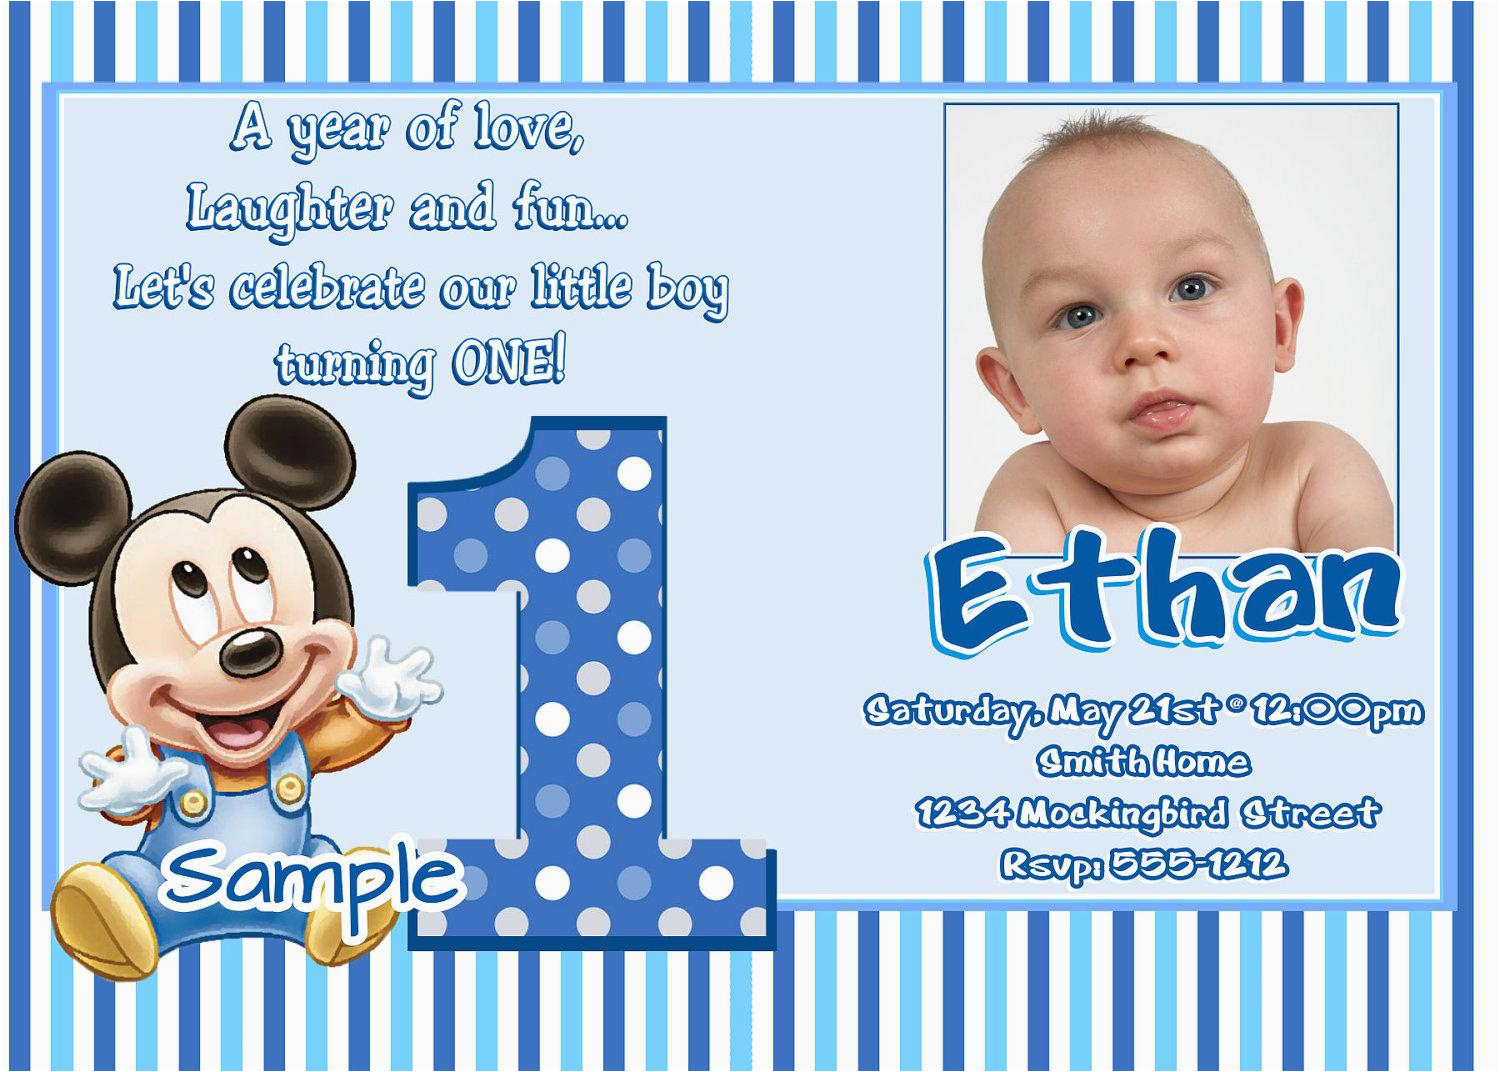 One Year Old Birthday Invitation Wording